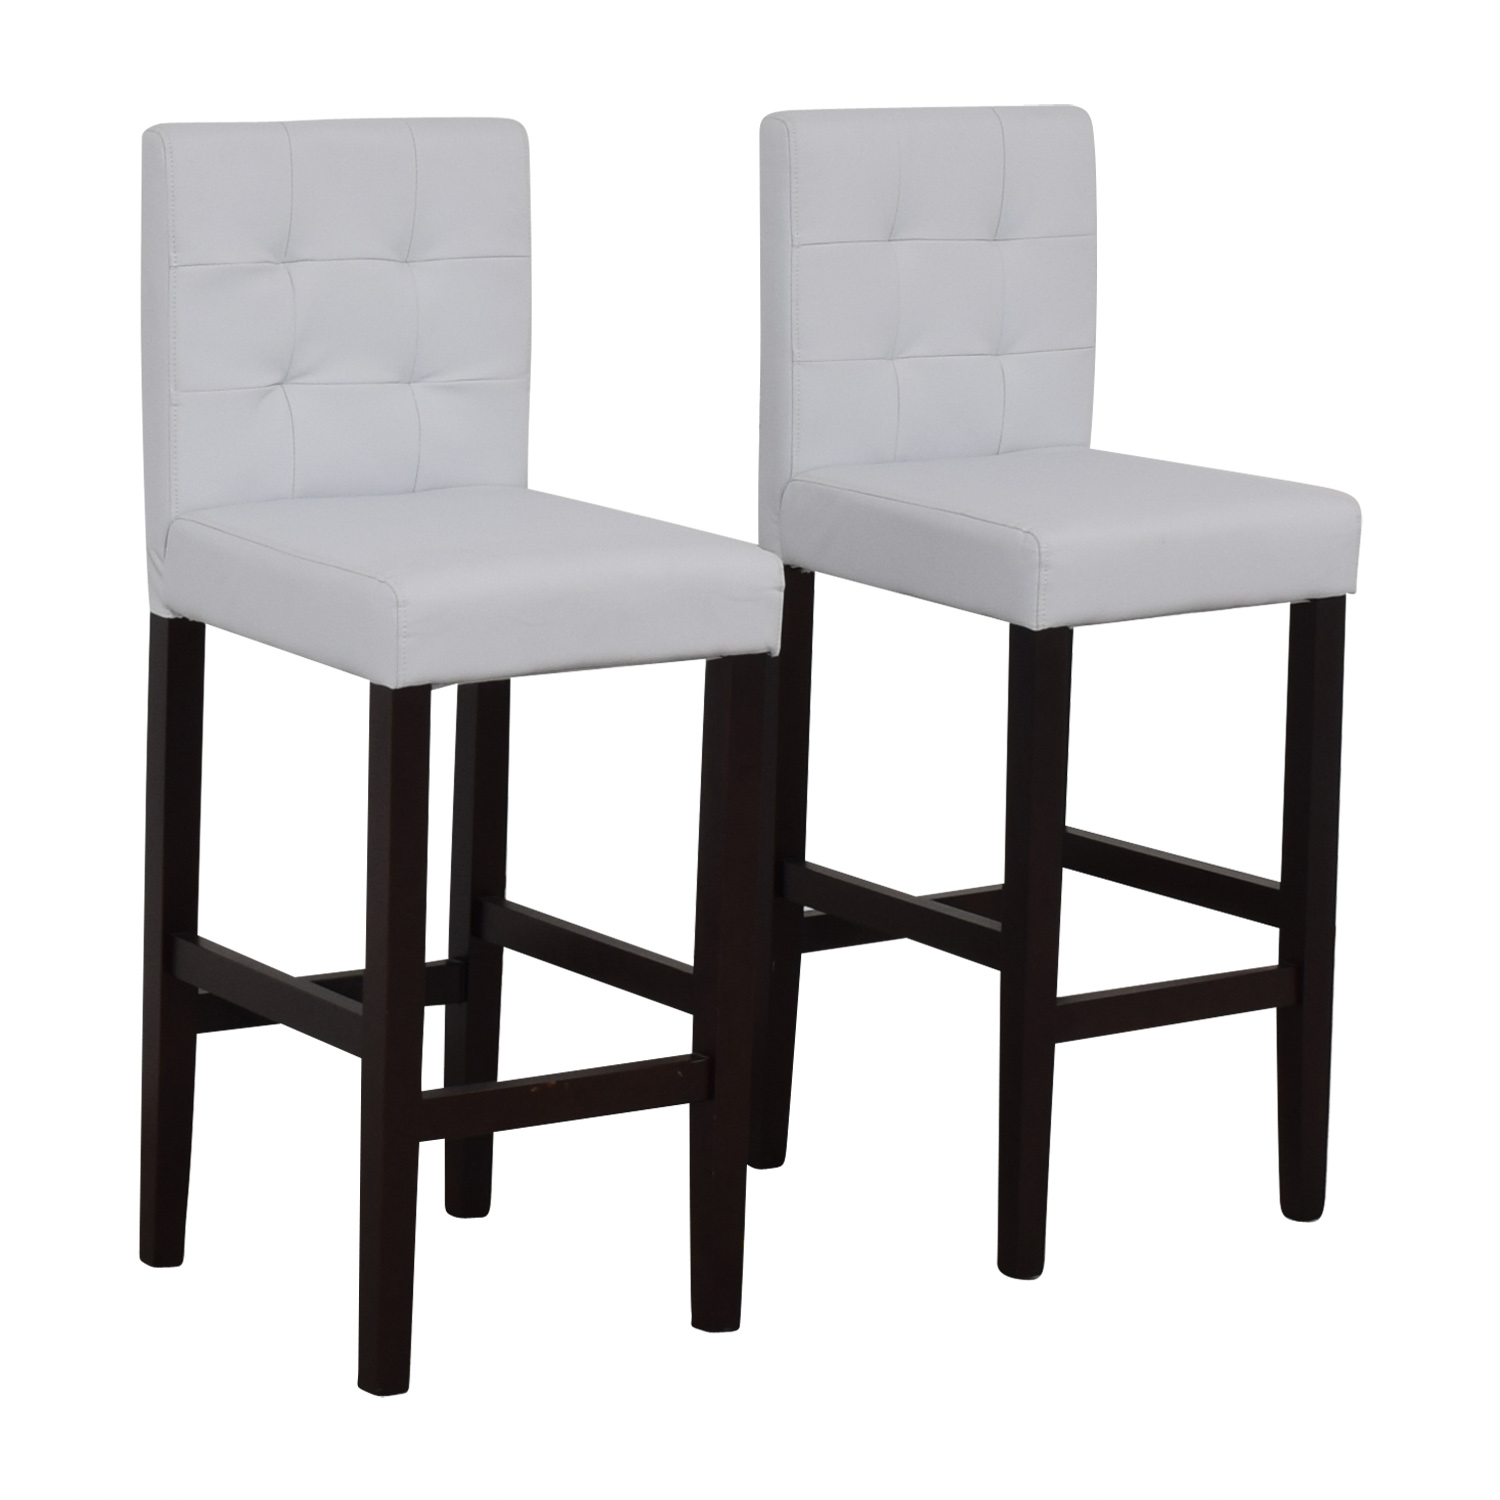 Crate & Barrel Crate & Barrel Tufted White Barstools on sale